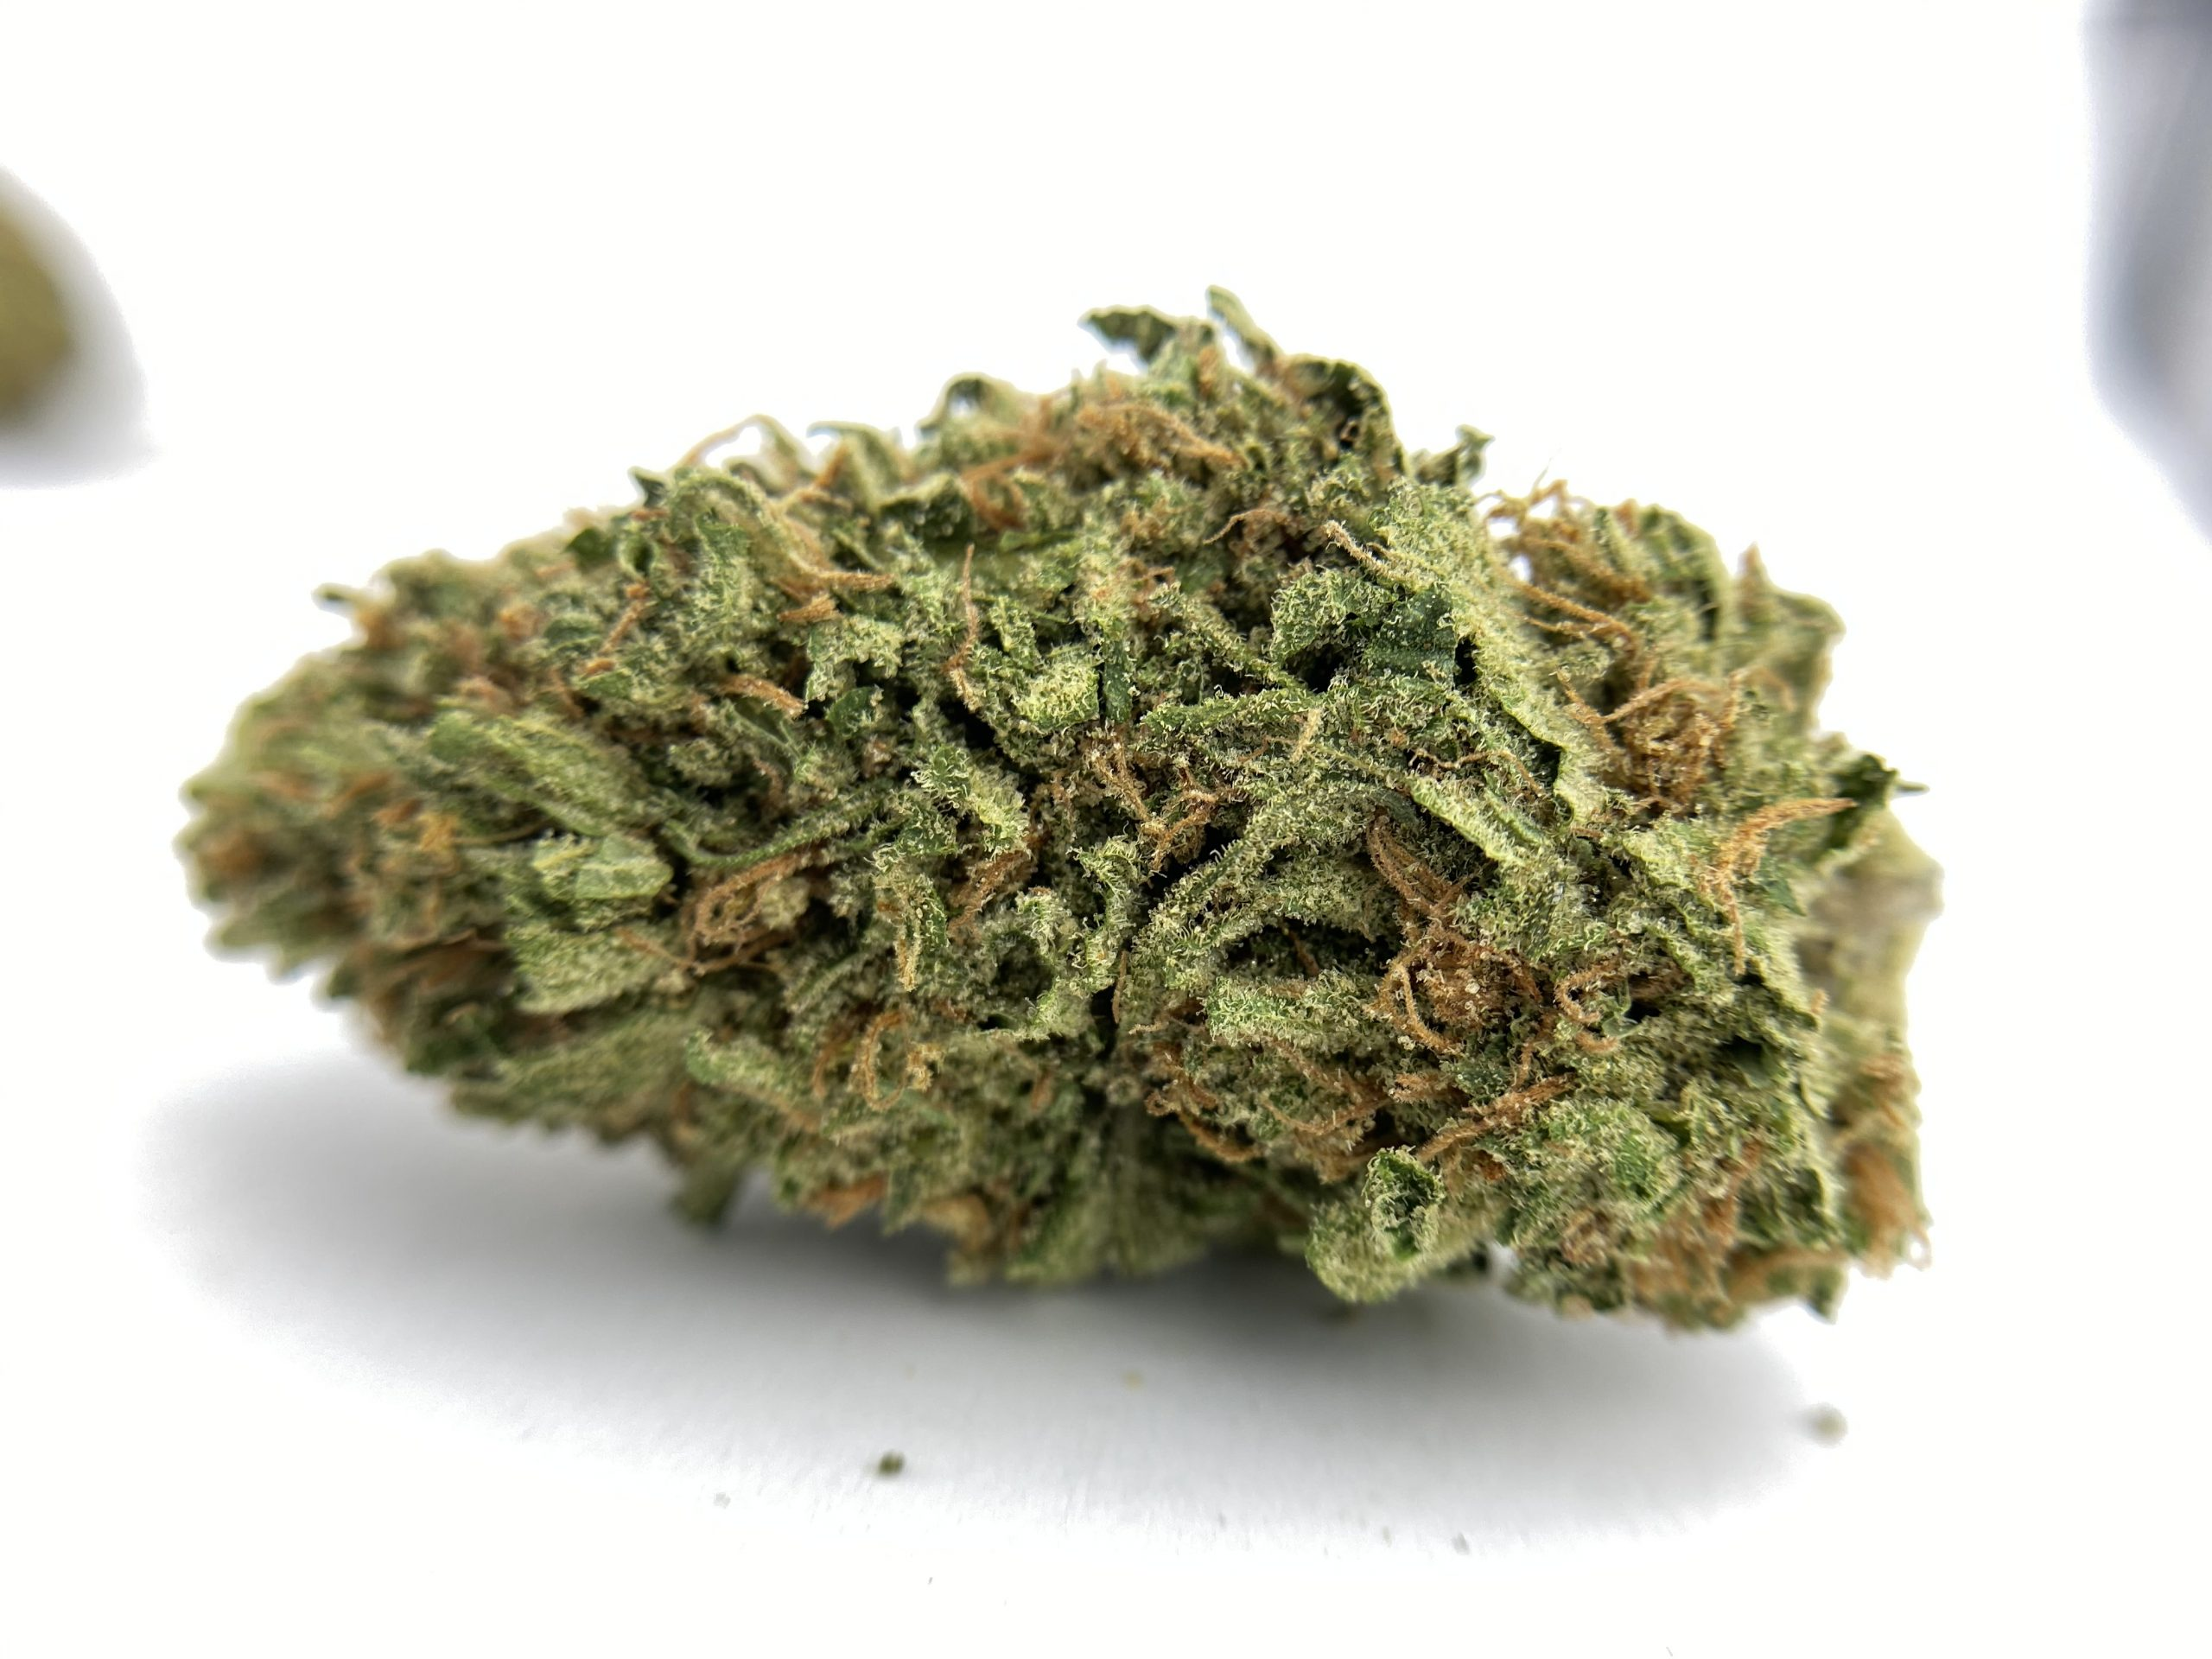 9Lb Hammer Cannabis Products